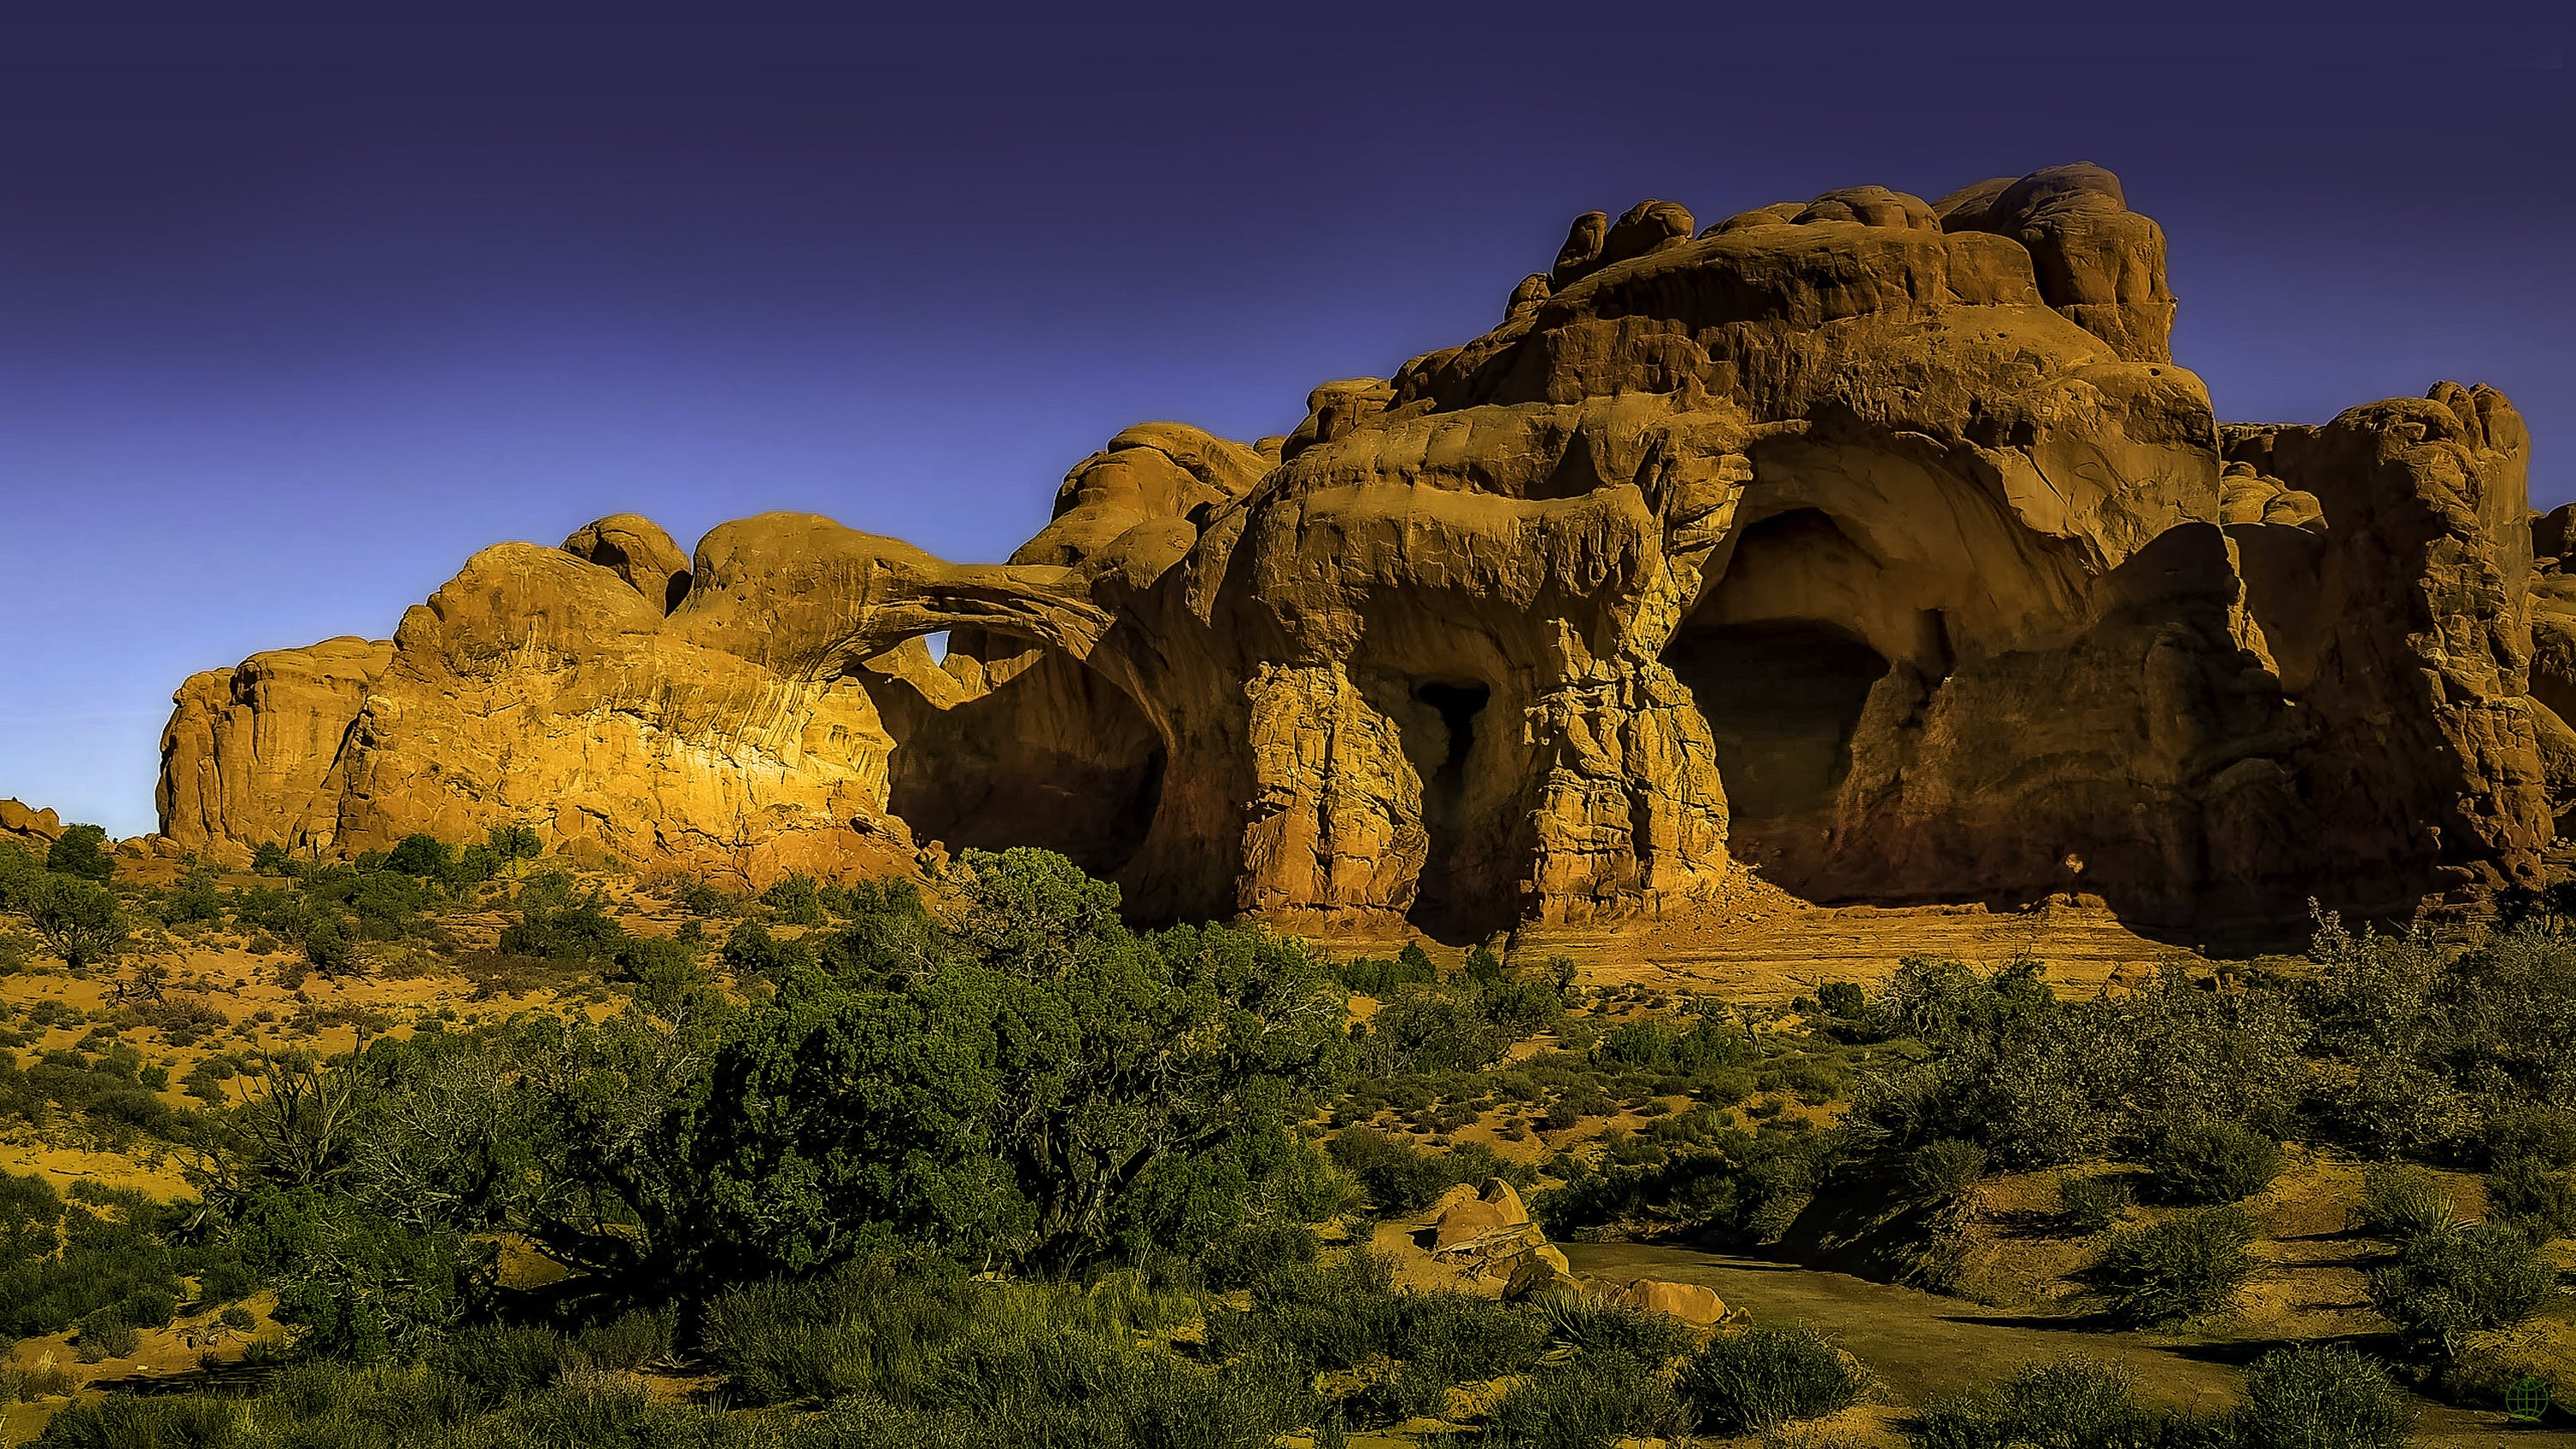 The Double Arch Rock Formation in Utah